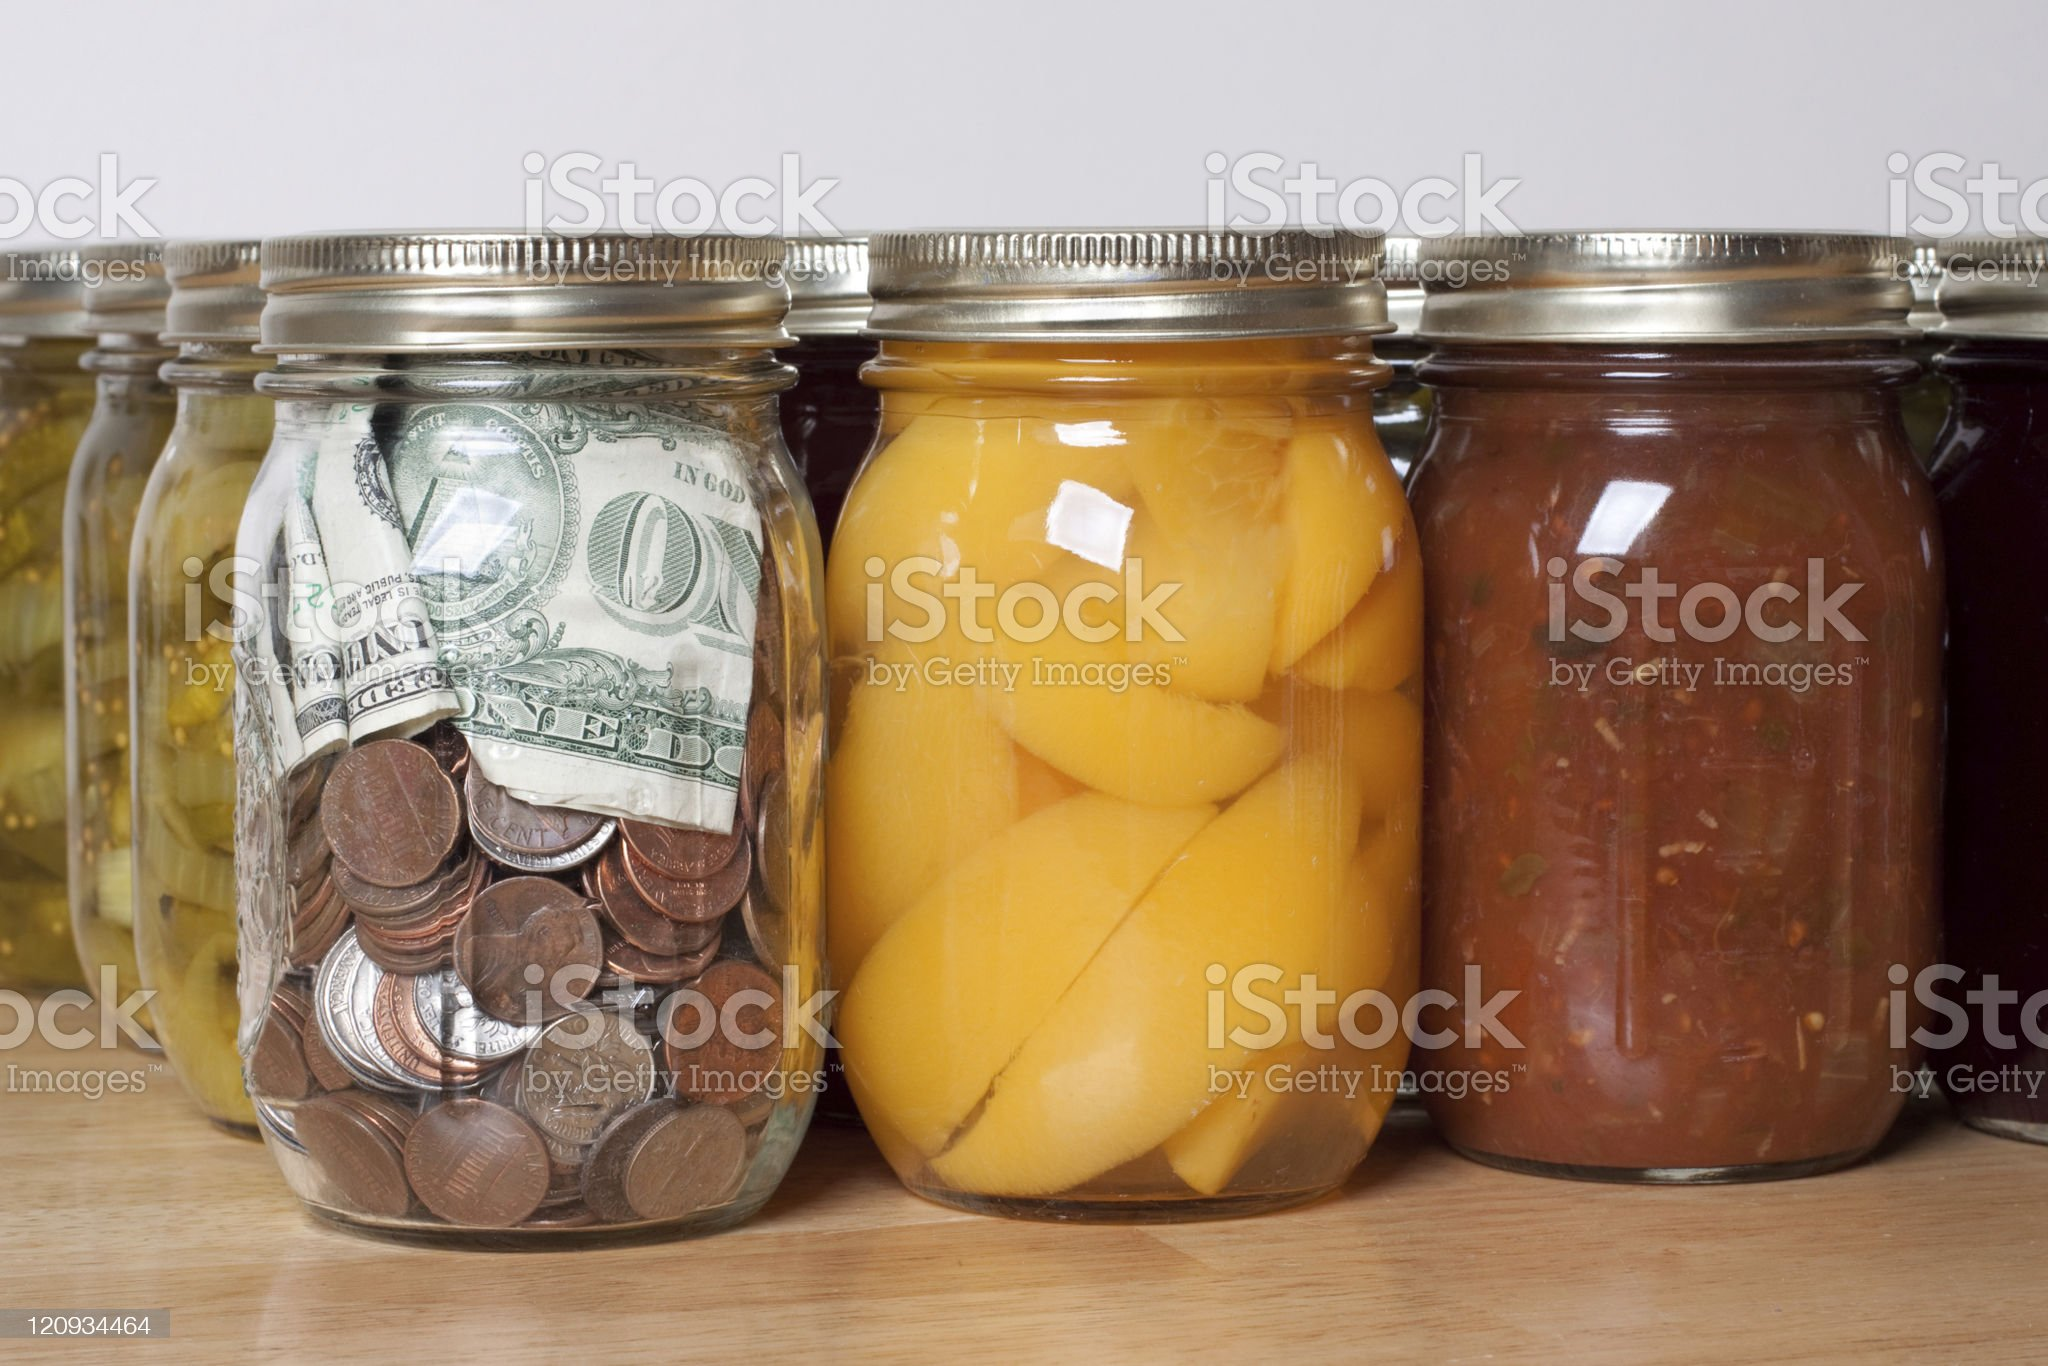 Canned Produce and USD Currency in Home Storage Canning Jars royalty-free stock photo